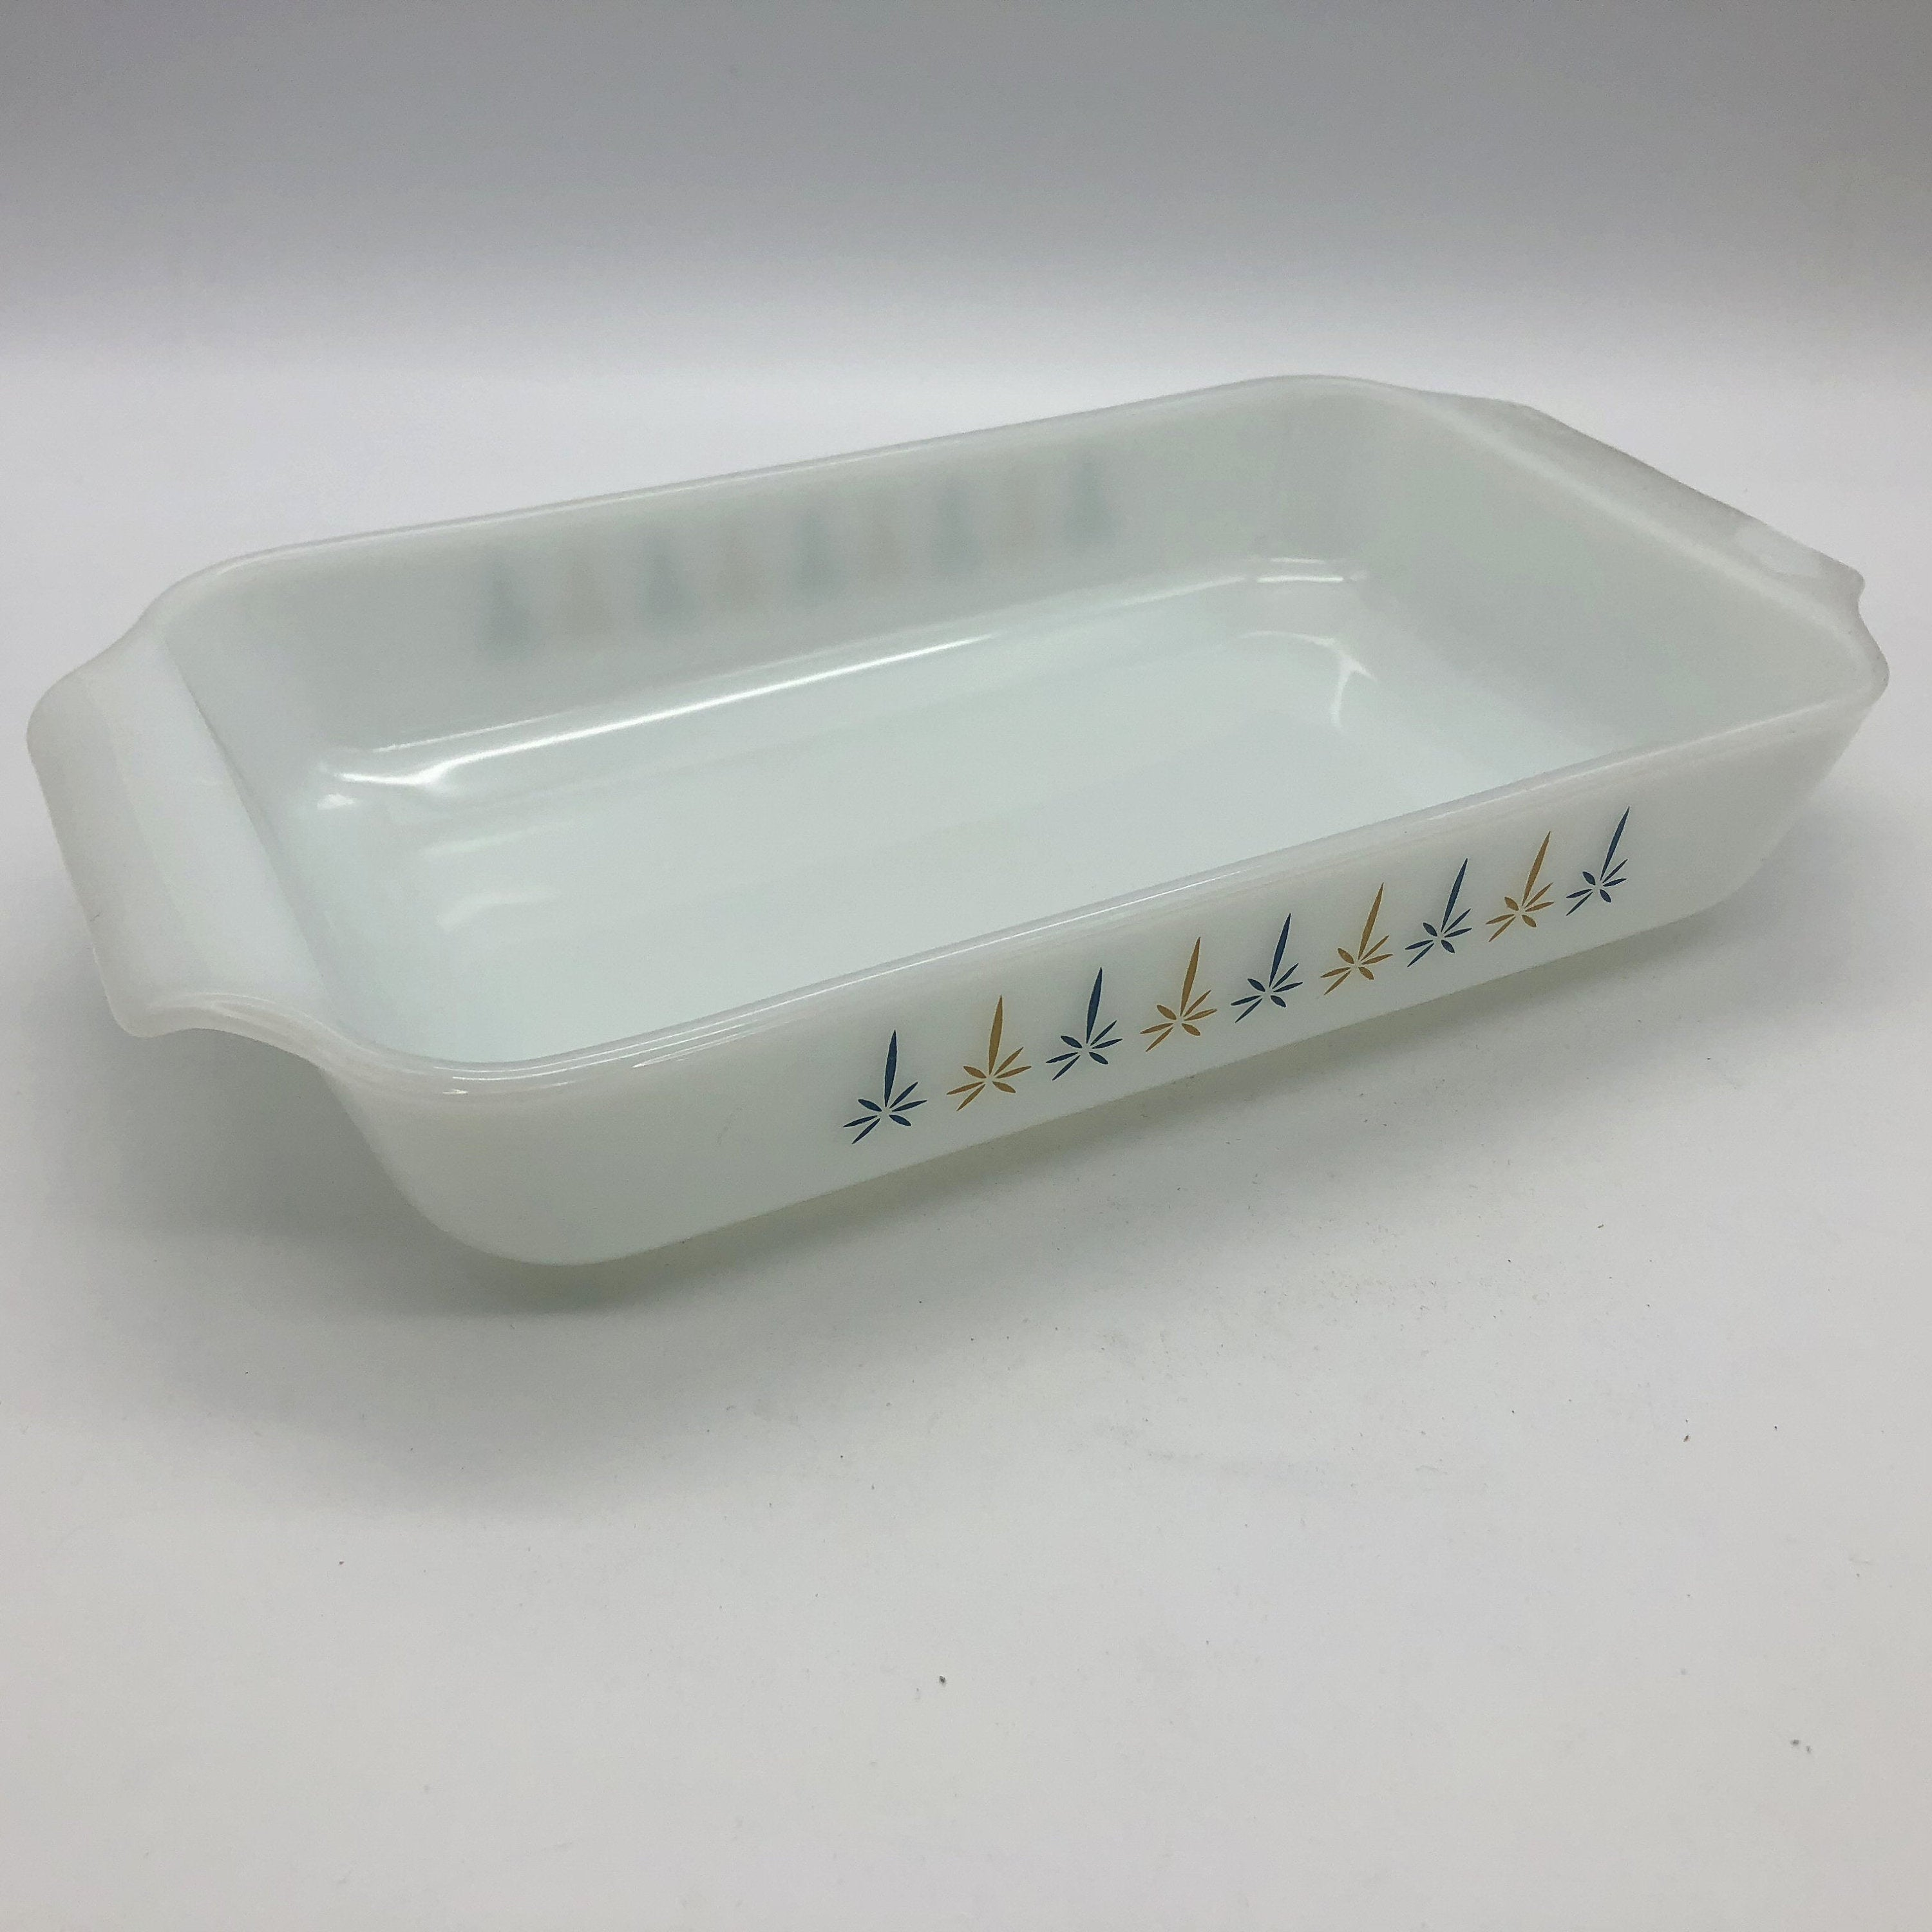 Discontinued 432 Rectangular 6x10 Candle Glow Anchor Hocking Fire King Open Baking Casserole Milk Glass Dish 1.5 Qt